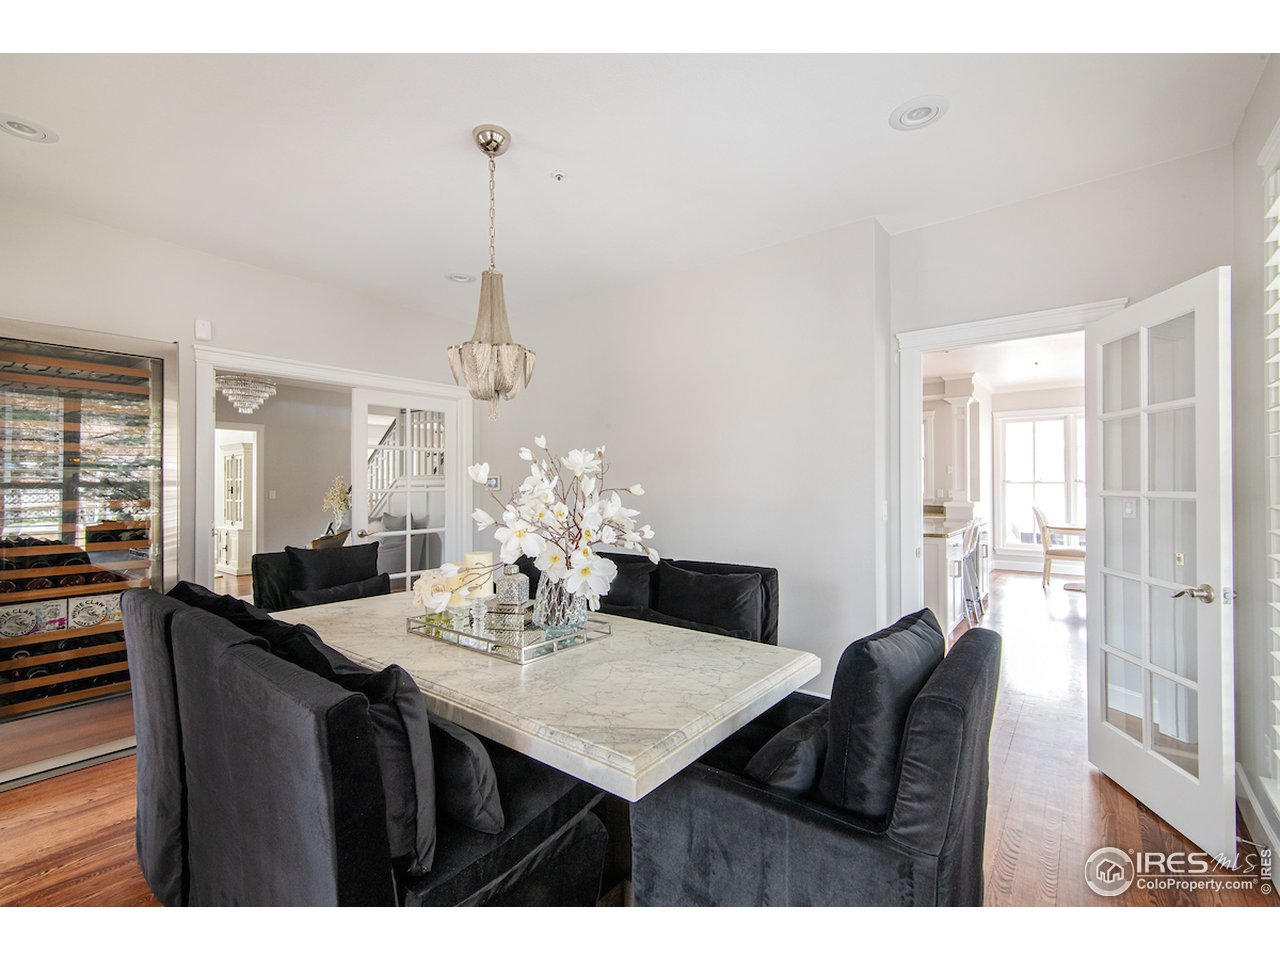 Formal dining room with french doors & entry from kitchen